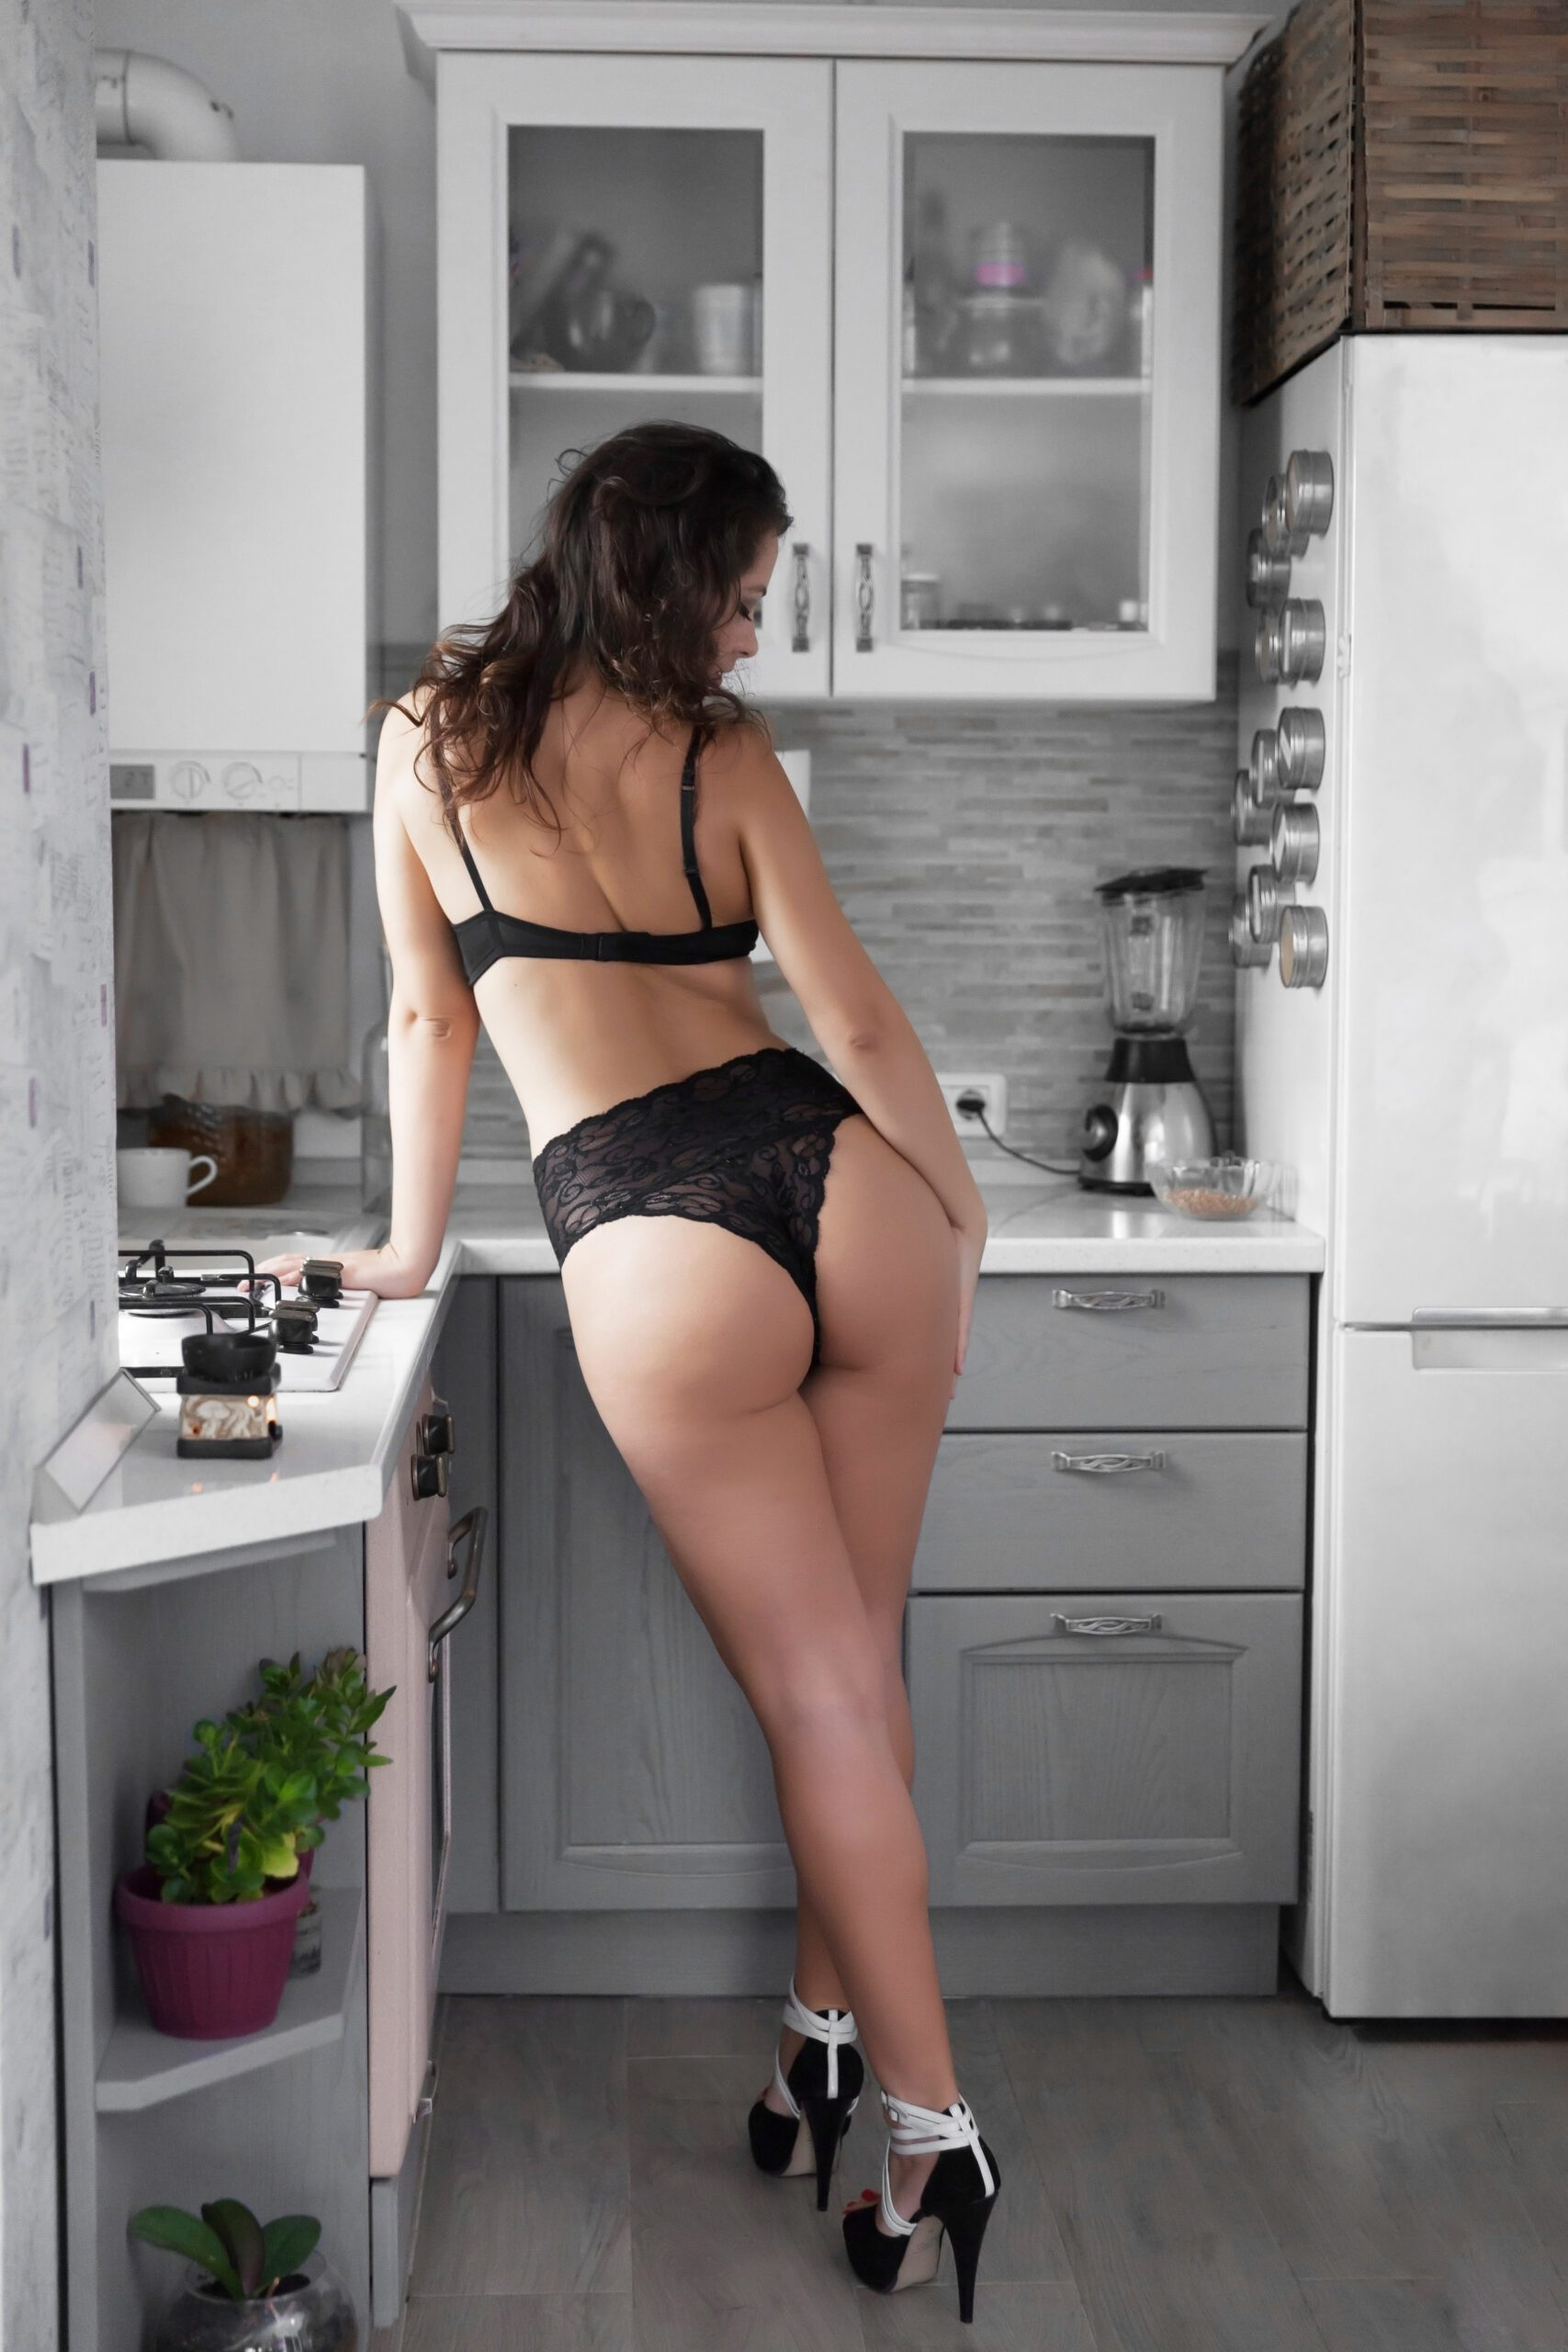 Sensual women touching hers booty softly in the kitchen.